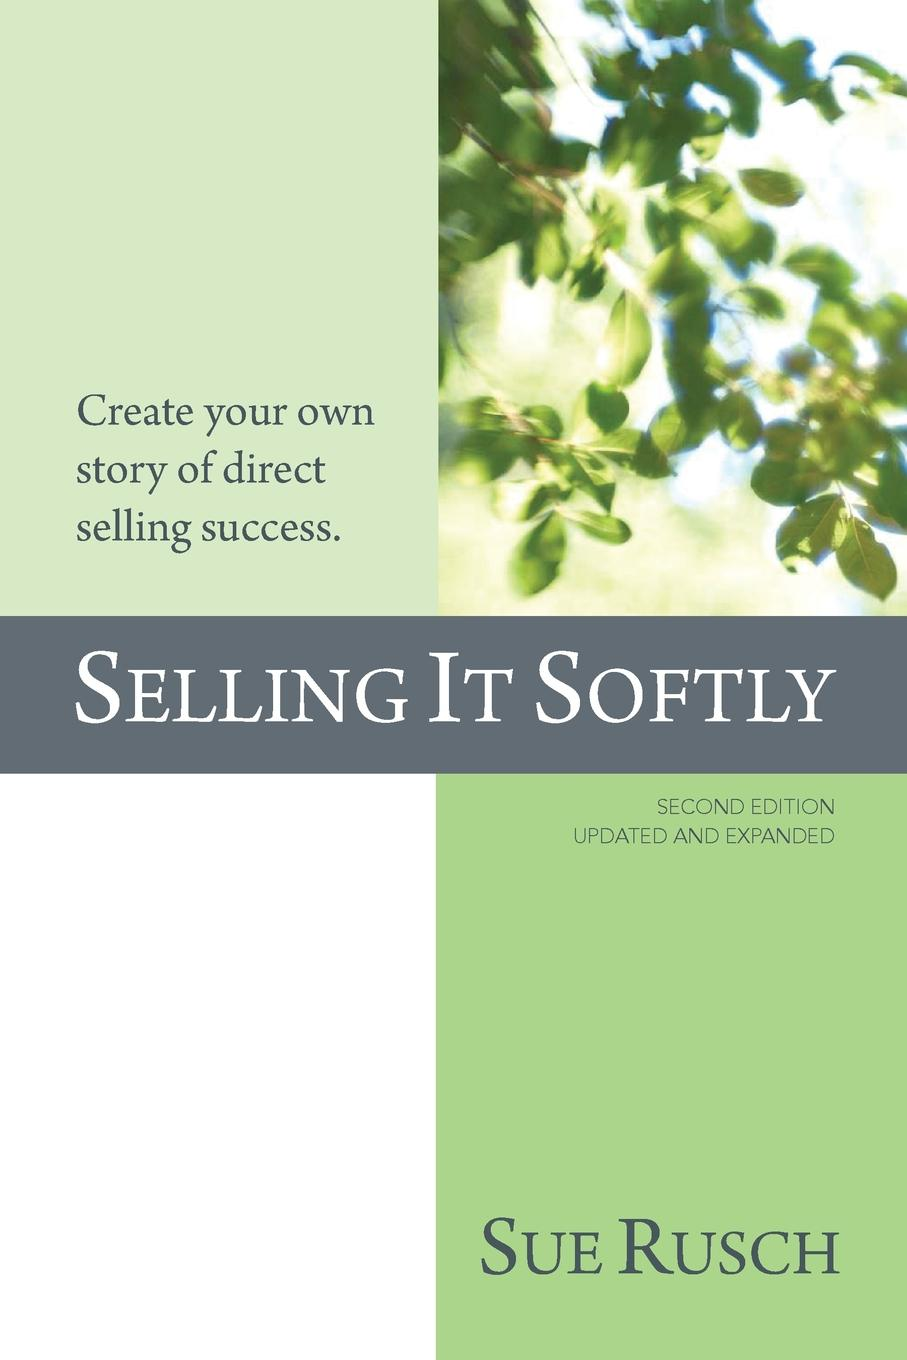 Sue Rusch SELLING IT SOFTLY. Create your own story of direct selling success.